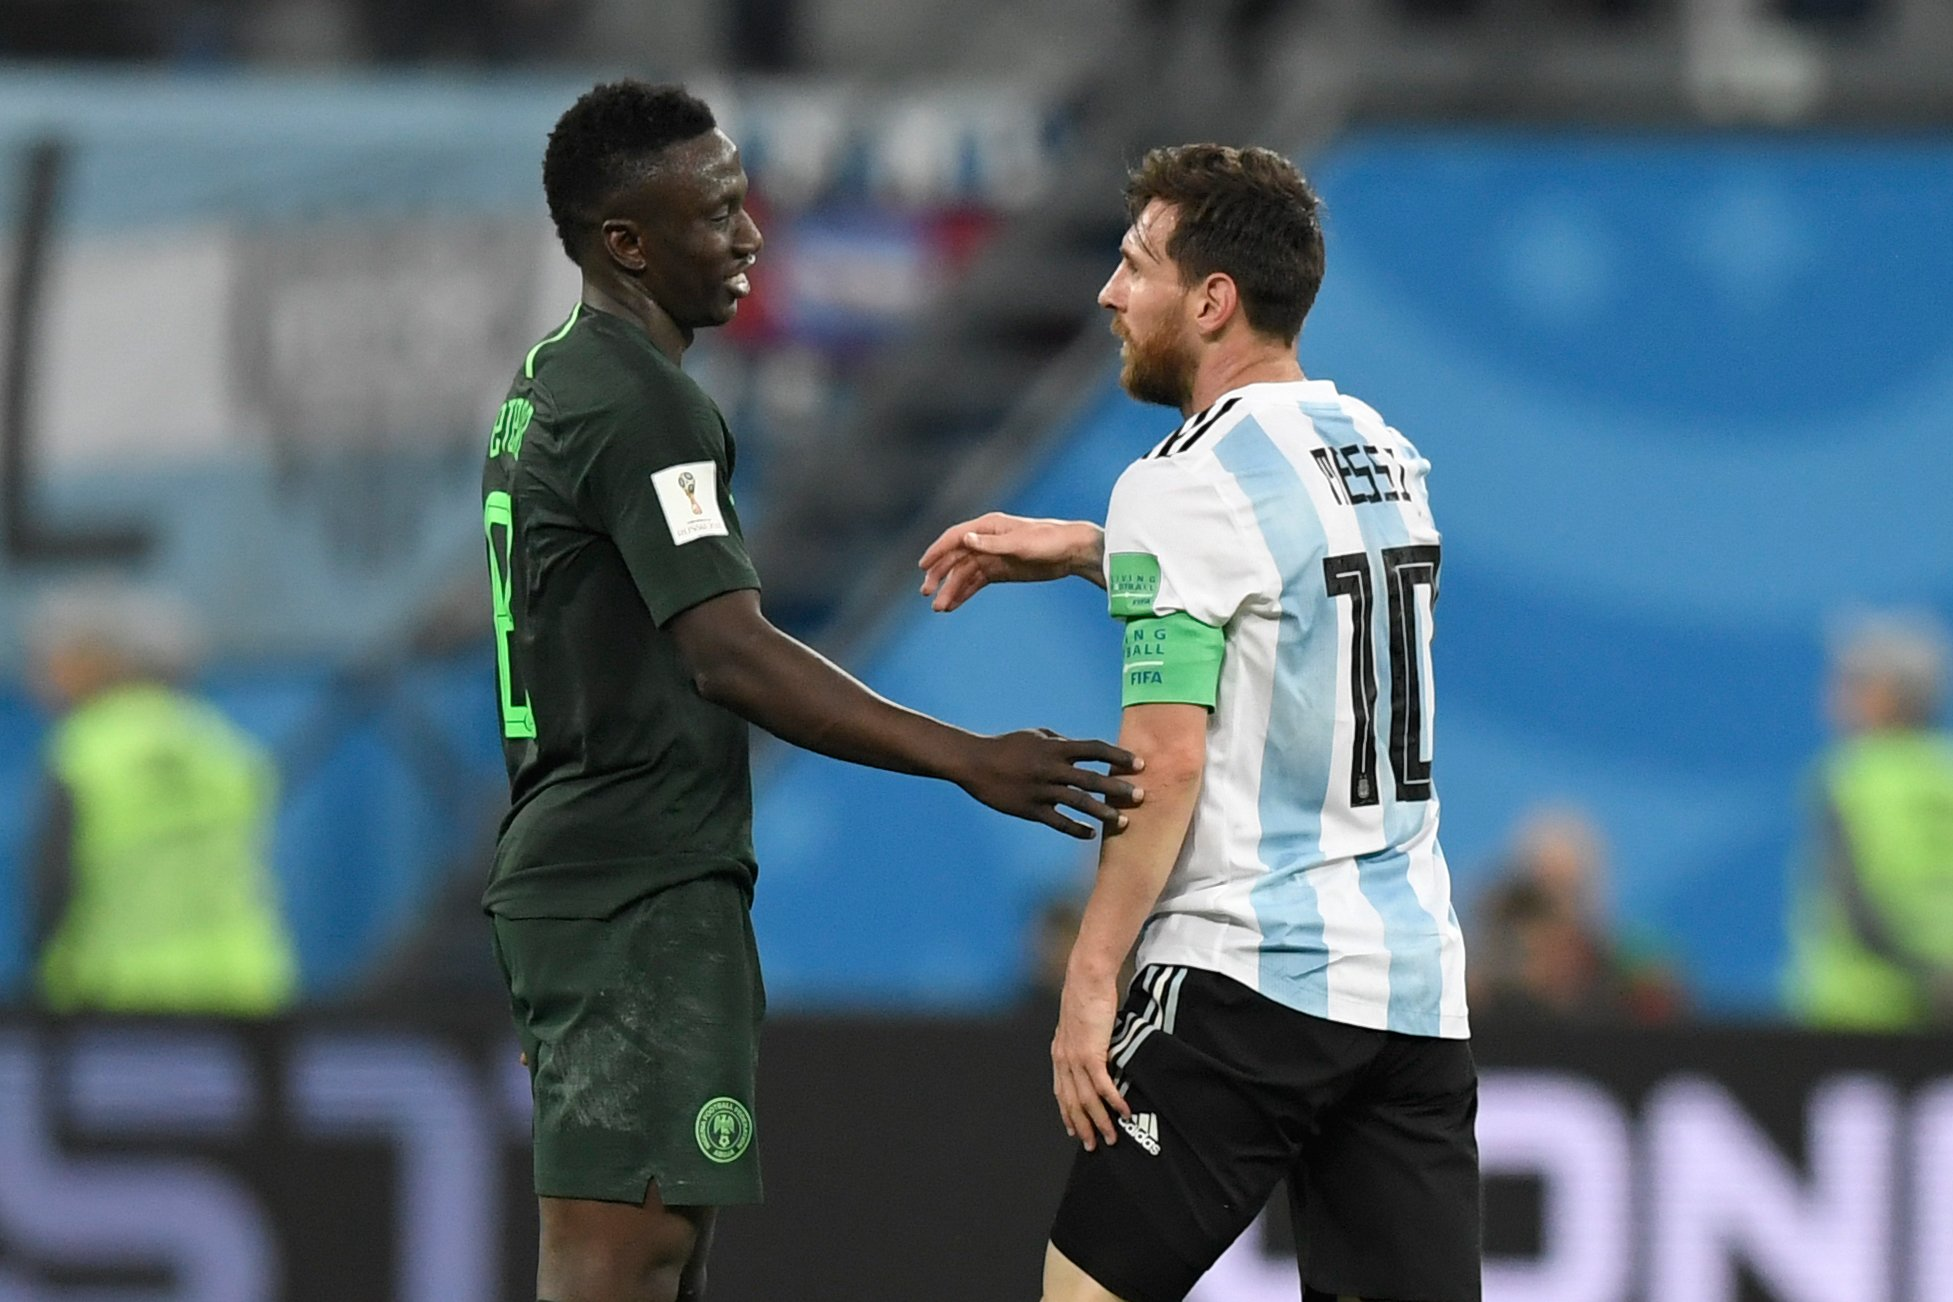 Etebo Beats Messi, Has Highest Rate Of Successful Take-Ons At 2018 World Cup